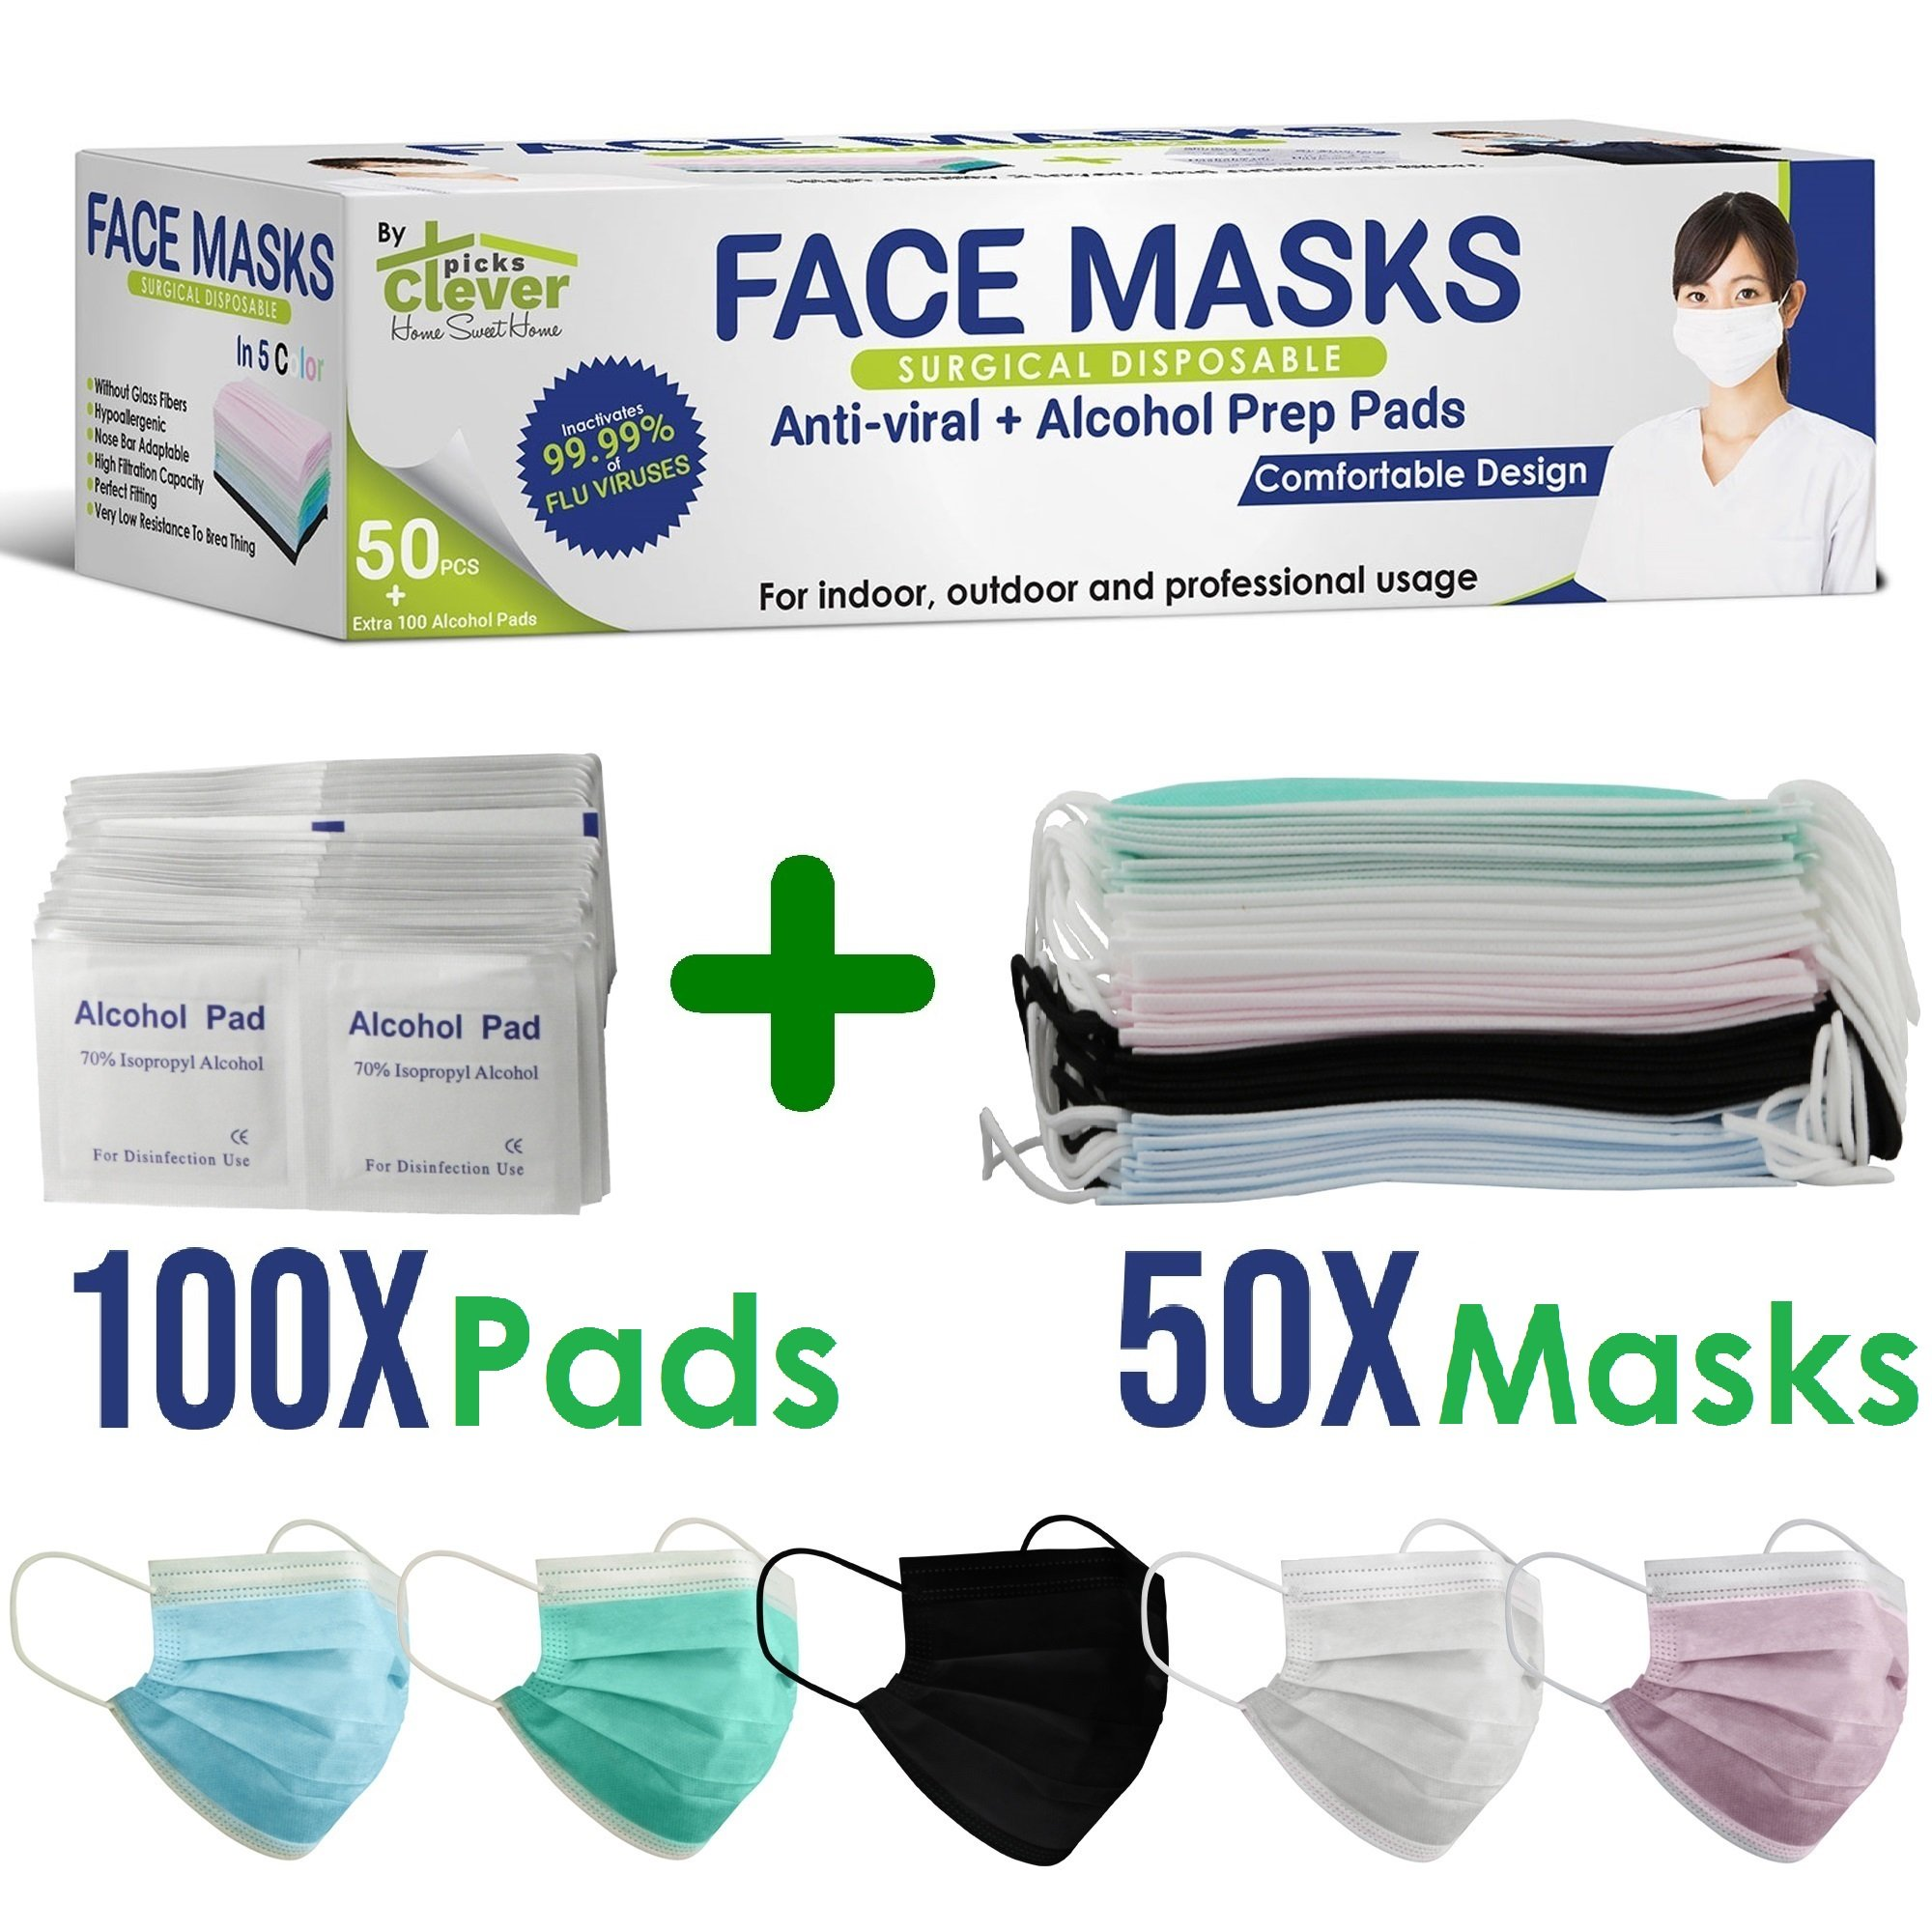 Disposable Surgical Allergy Pollen Dust Face Masks | Extra layers Advanced Filter 99.99% Clean air | Outdoor Indoor and Professional use | 50Pcs Masks + 100Pcs 70% Isopropyl alcohol pads | CleverPicks